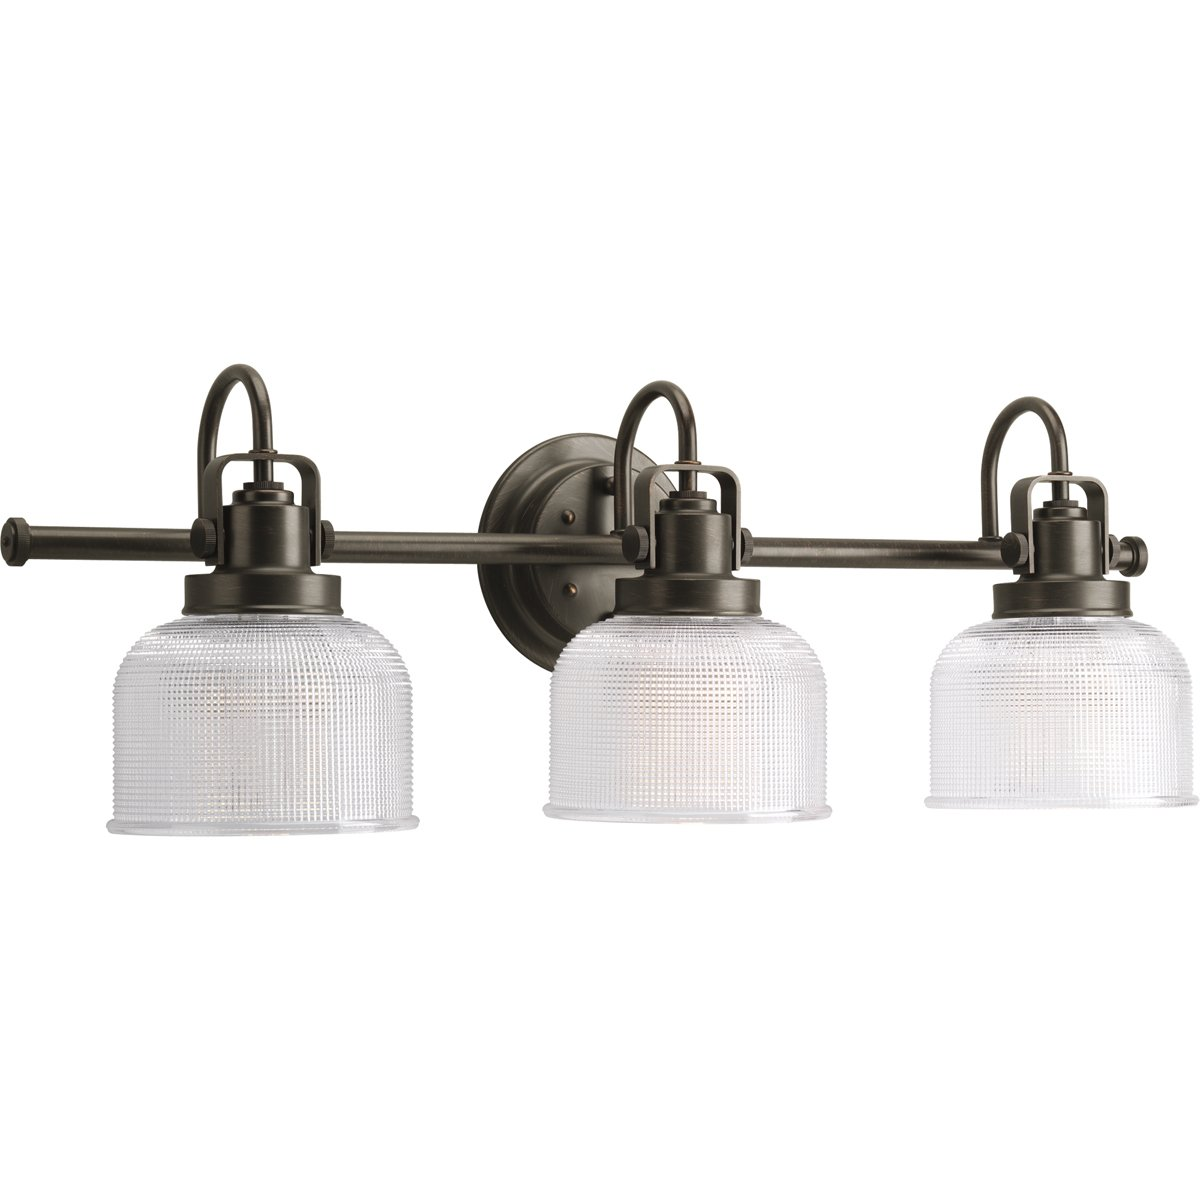 Progress Lighting P2992-81 Archie-Three Light Bath Vanity, Antique Nickel  Finish - Vanity Lighting Fixtures - Amazon.com - Progress Lighting P2992-81 Archie-Three Light Bath Vanity, Antique